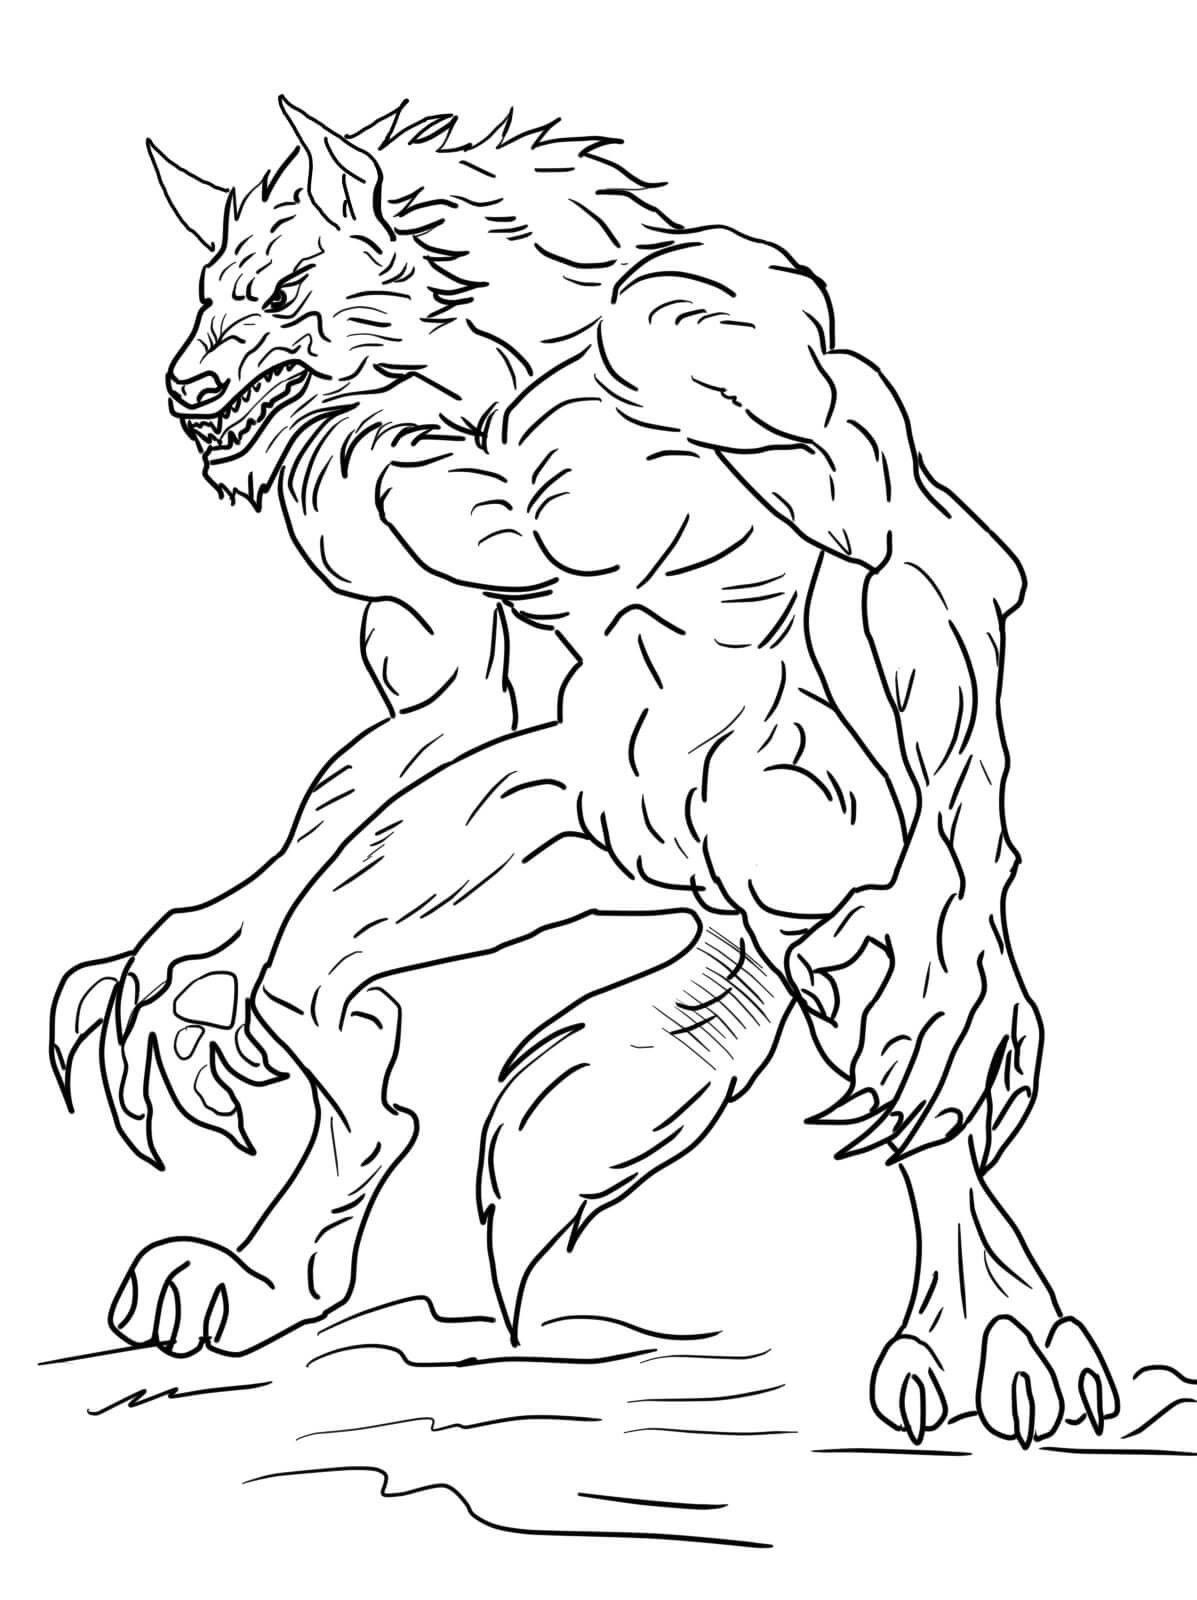 Werewolf Coloring Pages Best Coloring Pages For Kids Animal Coloring Pages Cartoon Coloring Pages Werewolf